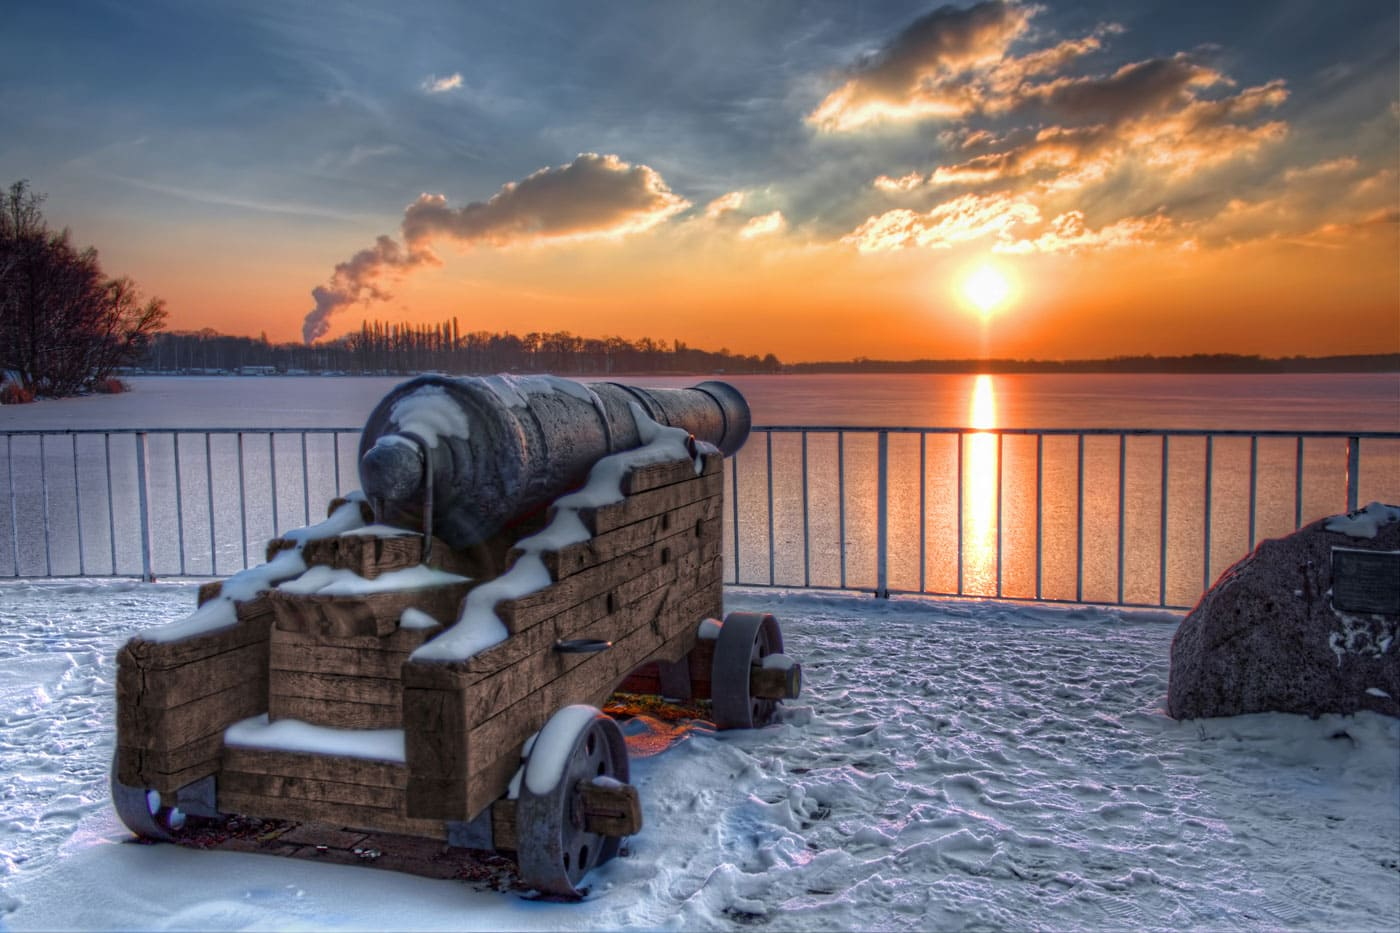 Cannon in Tegel | Berlin, Germany